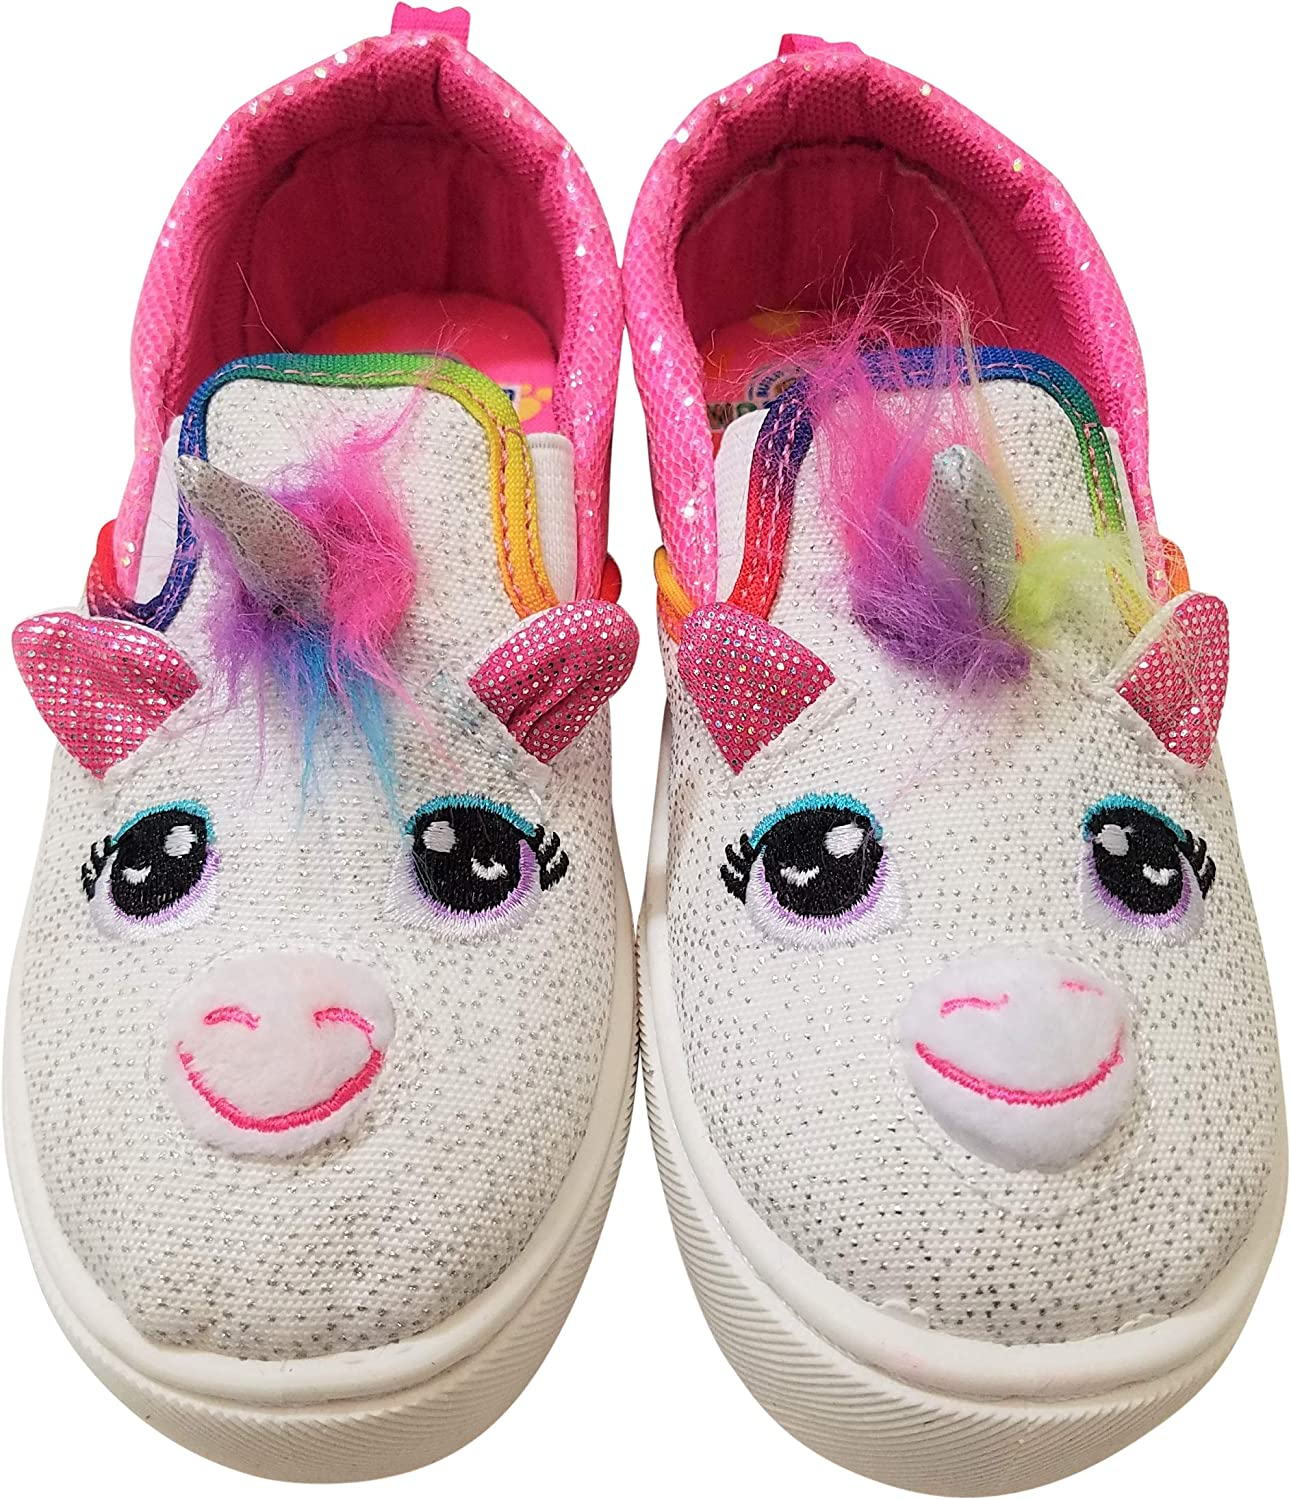 Sneakers Shoes Size 8 Toddler and Little Kids Girl Unicorn Footwear